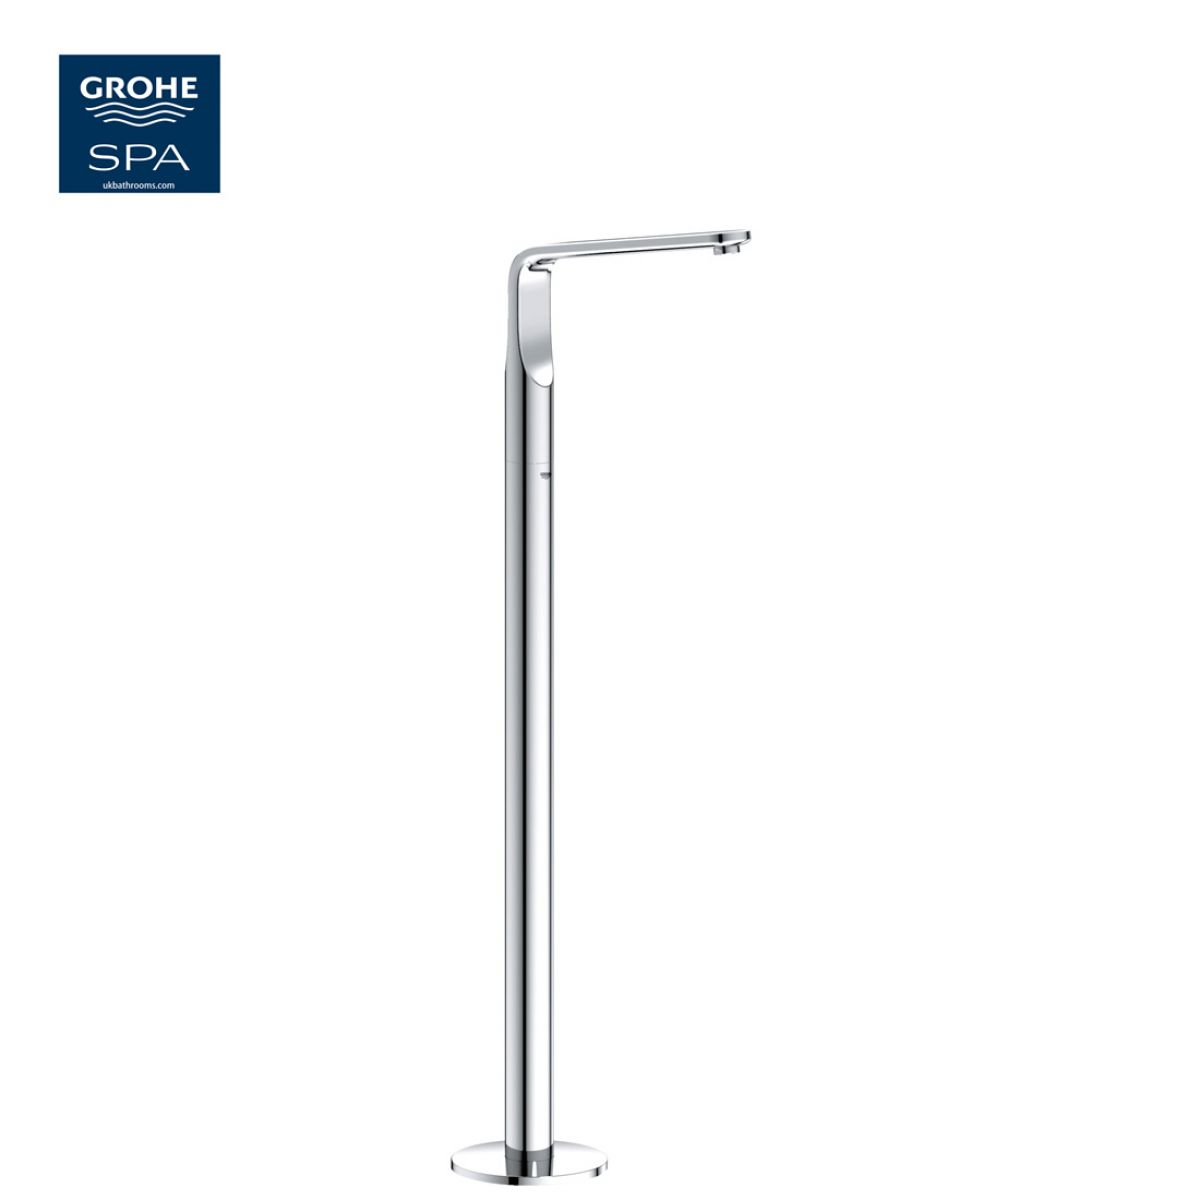 Grohe Veris Floor-mounted Bath Spout : UK Bathrooms